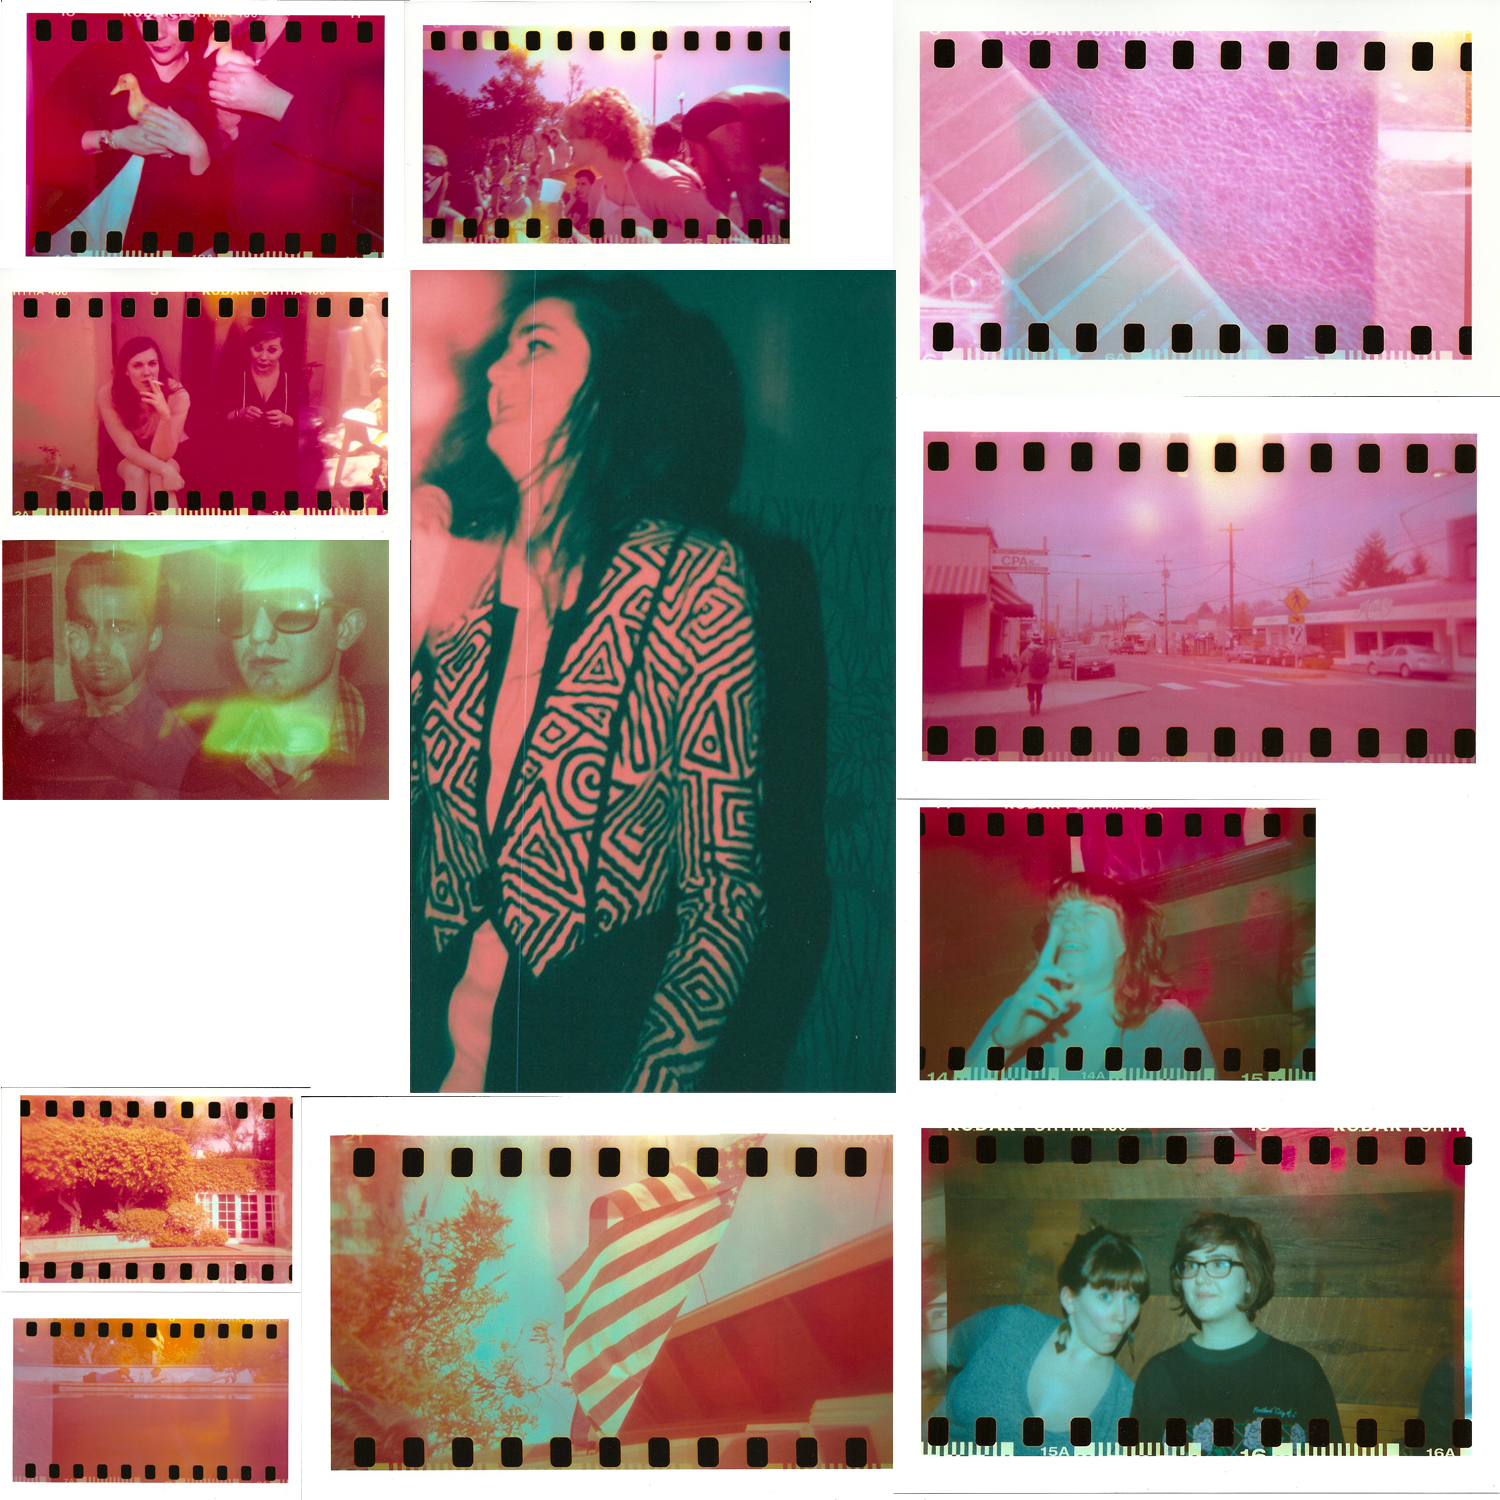 1.14.15 Orange-pink-red photo montages